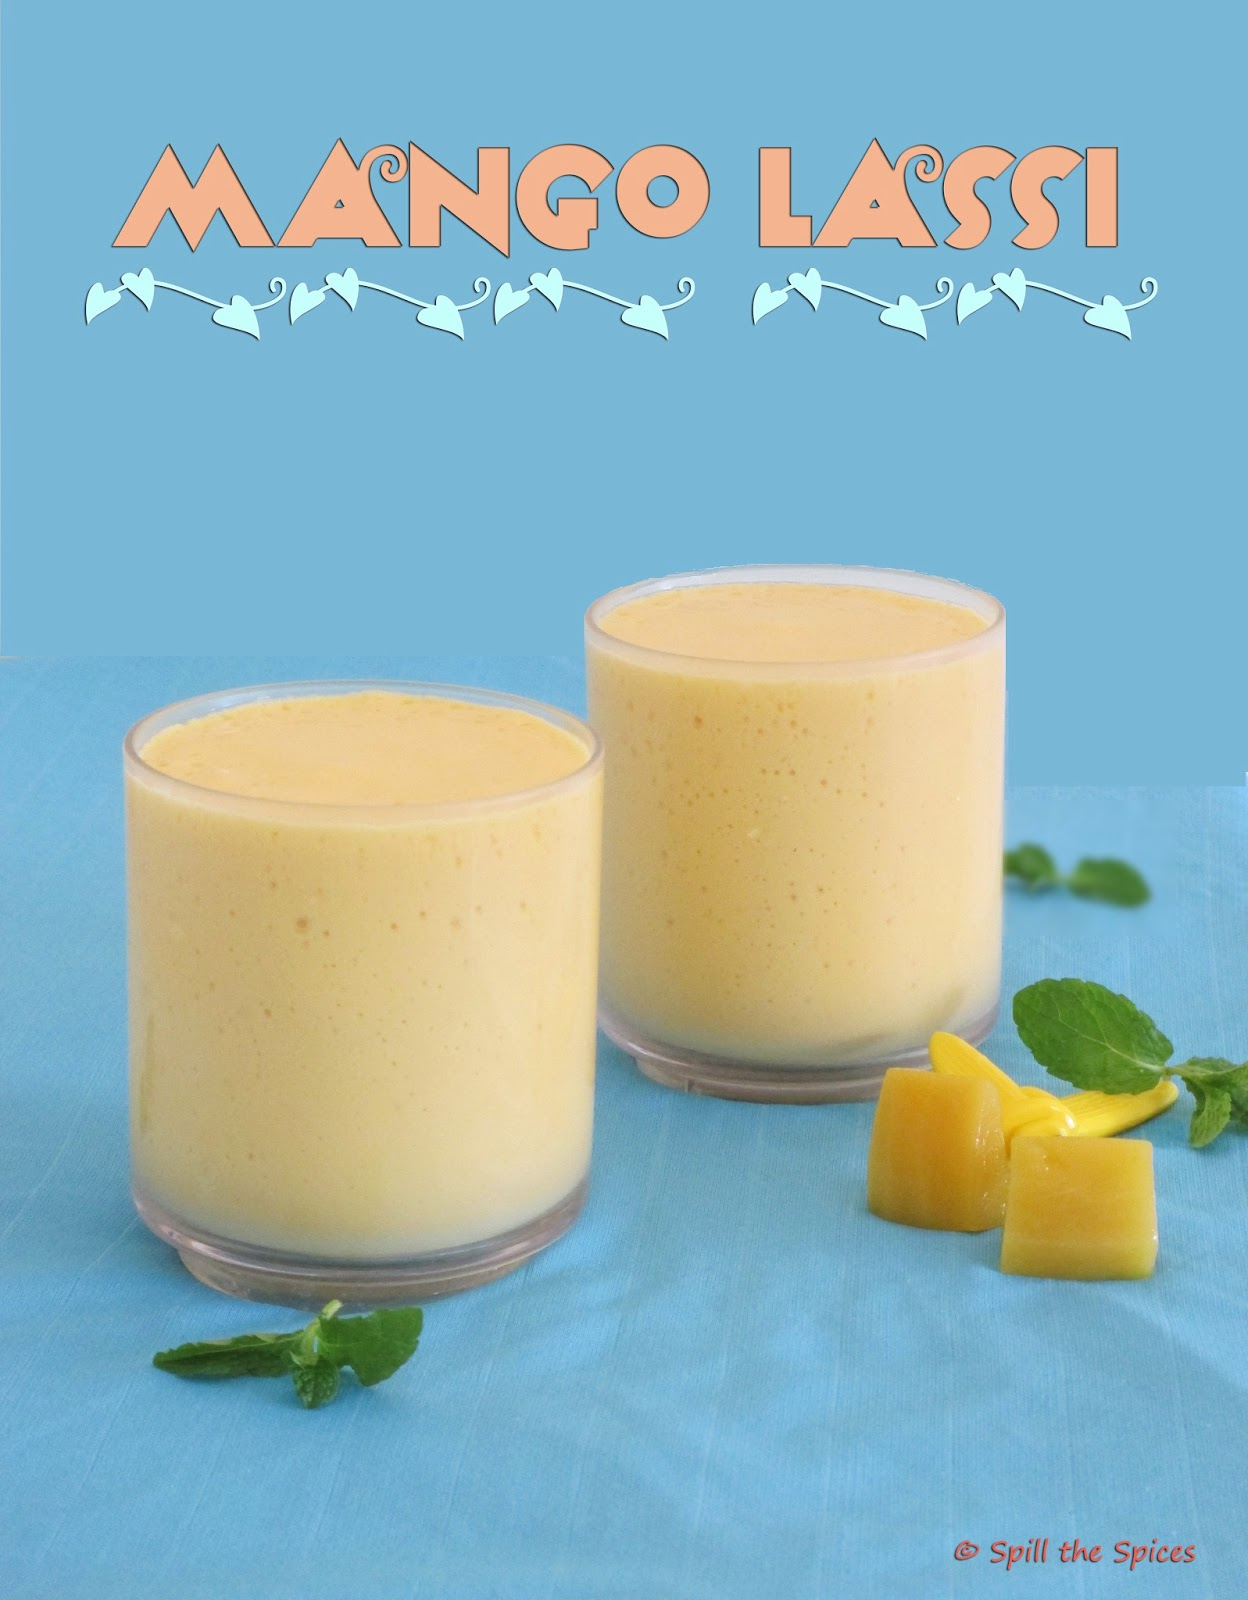 Mango Lassi | Spill the Spices